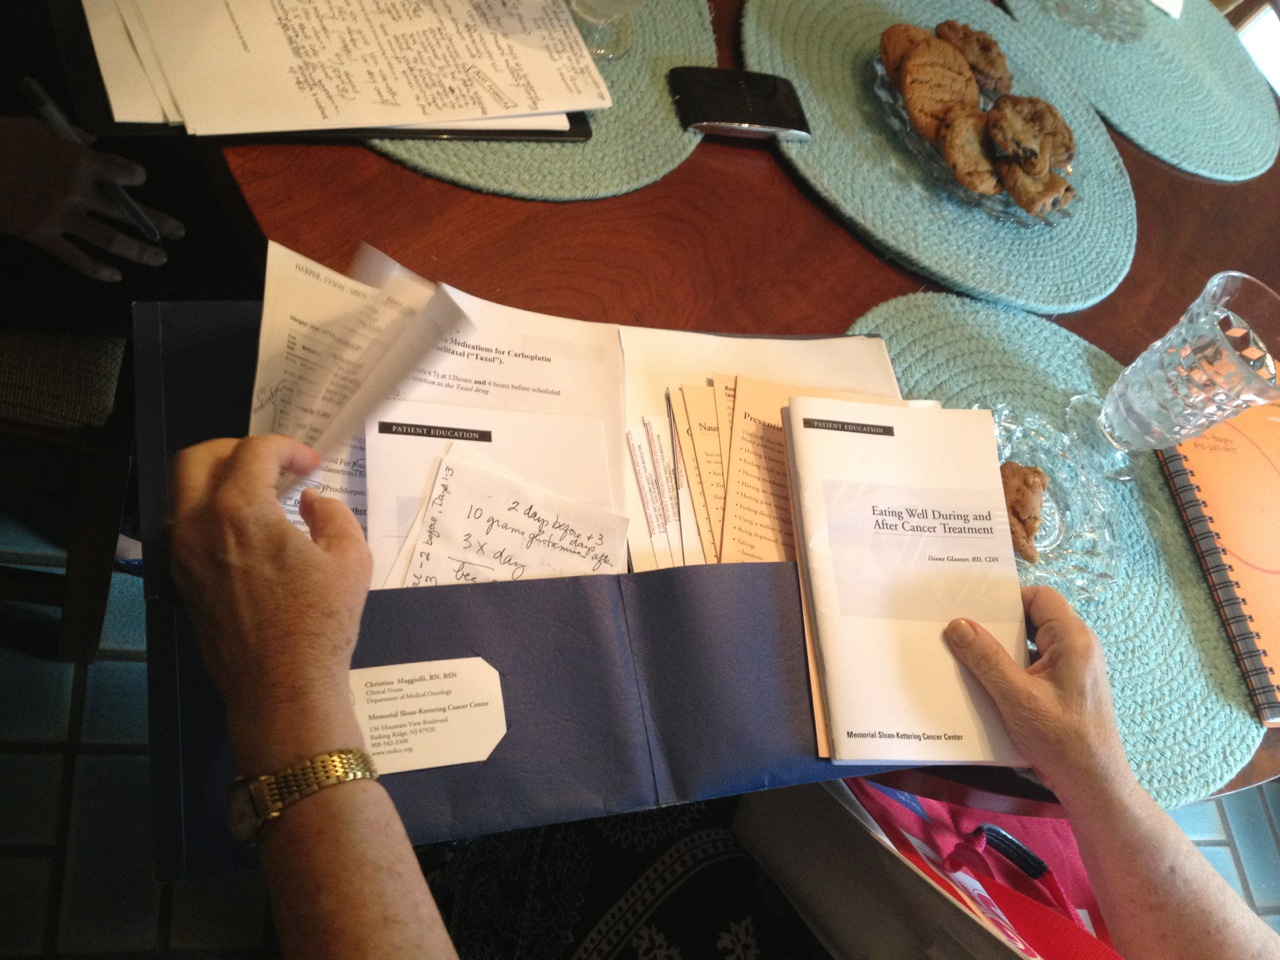 HOME INTERVIEW Patient shows us all the pamphlets she receives from her visits